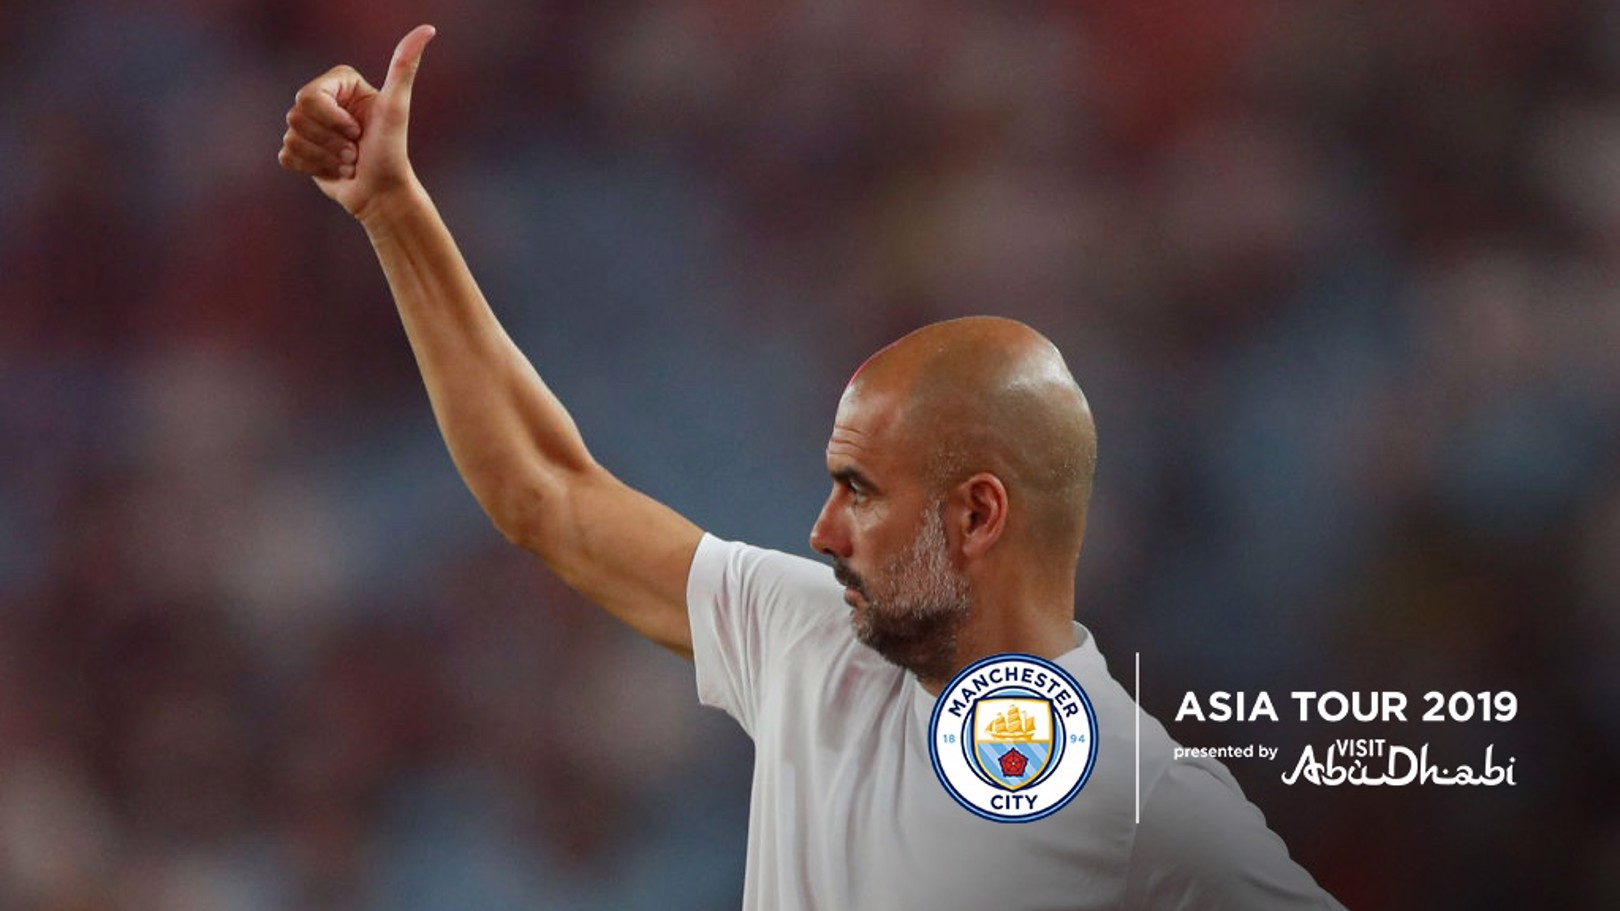 PEP: Players are hungry for more